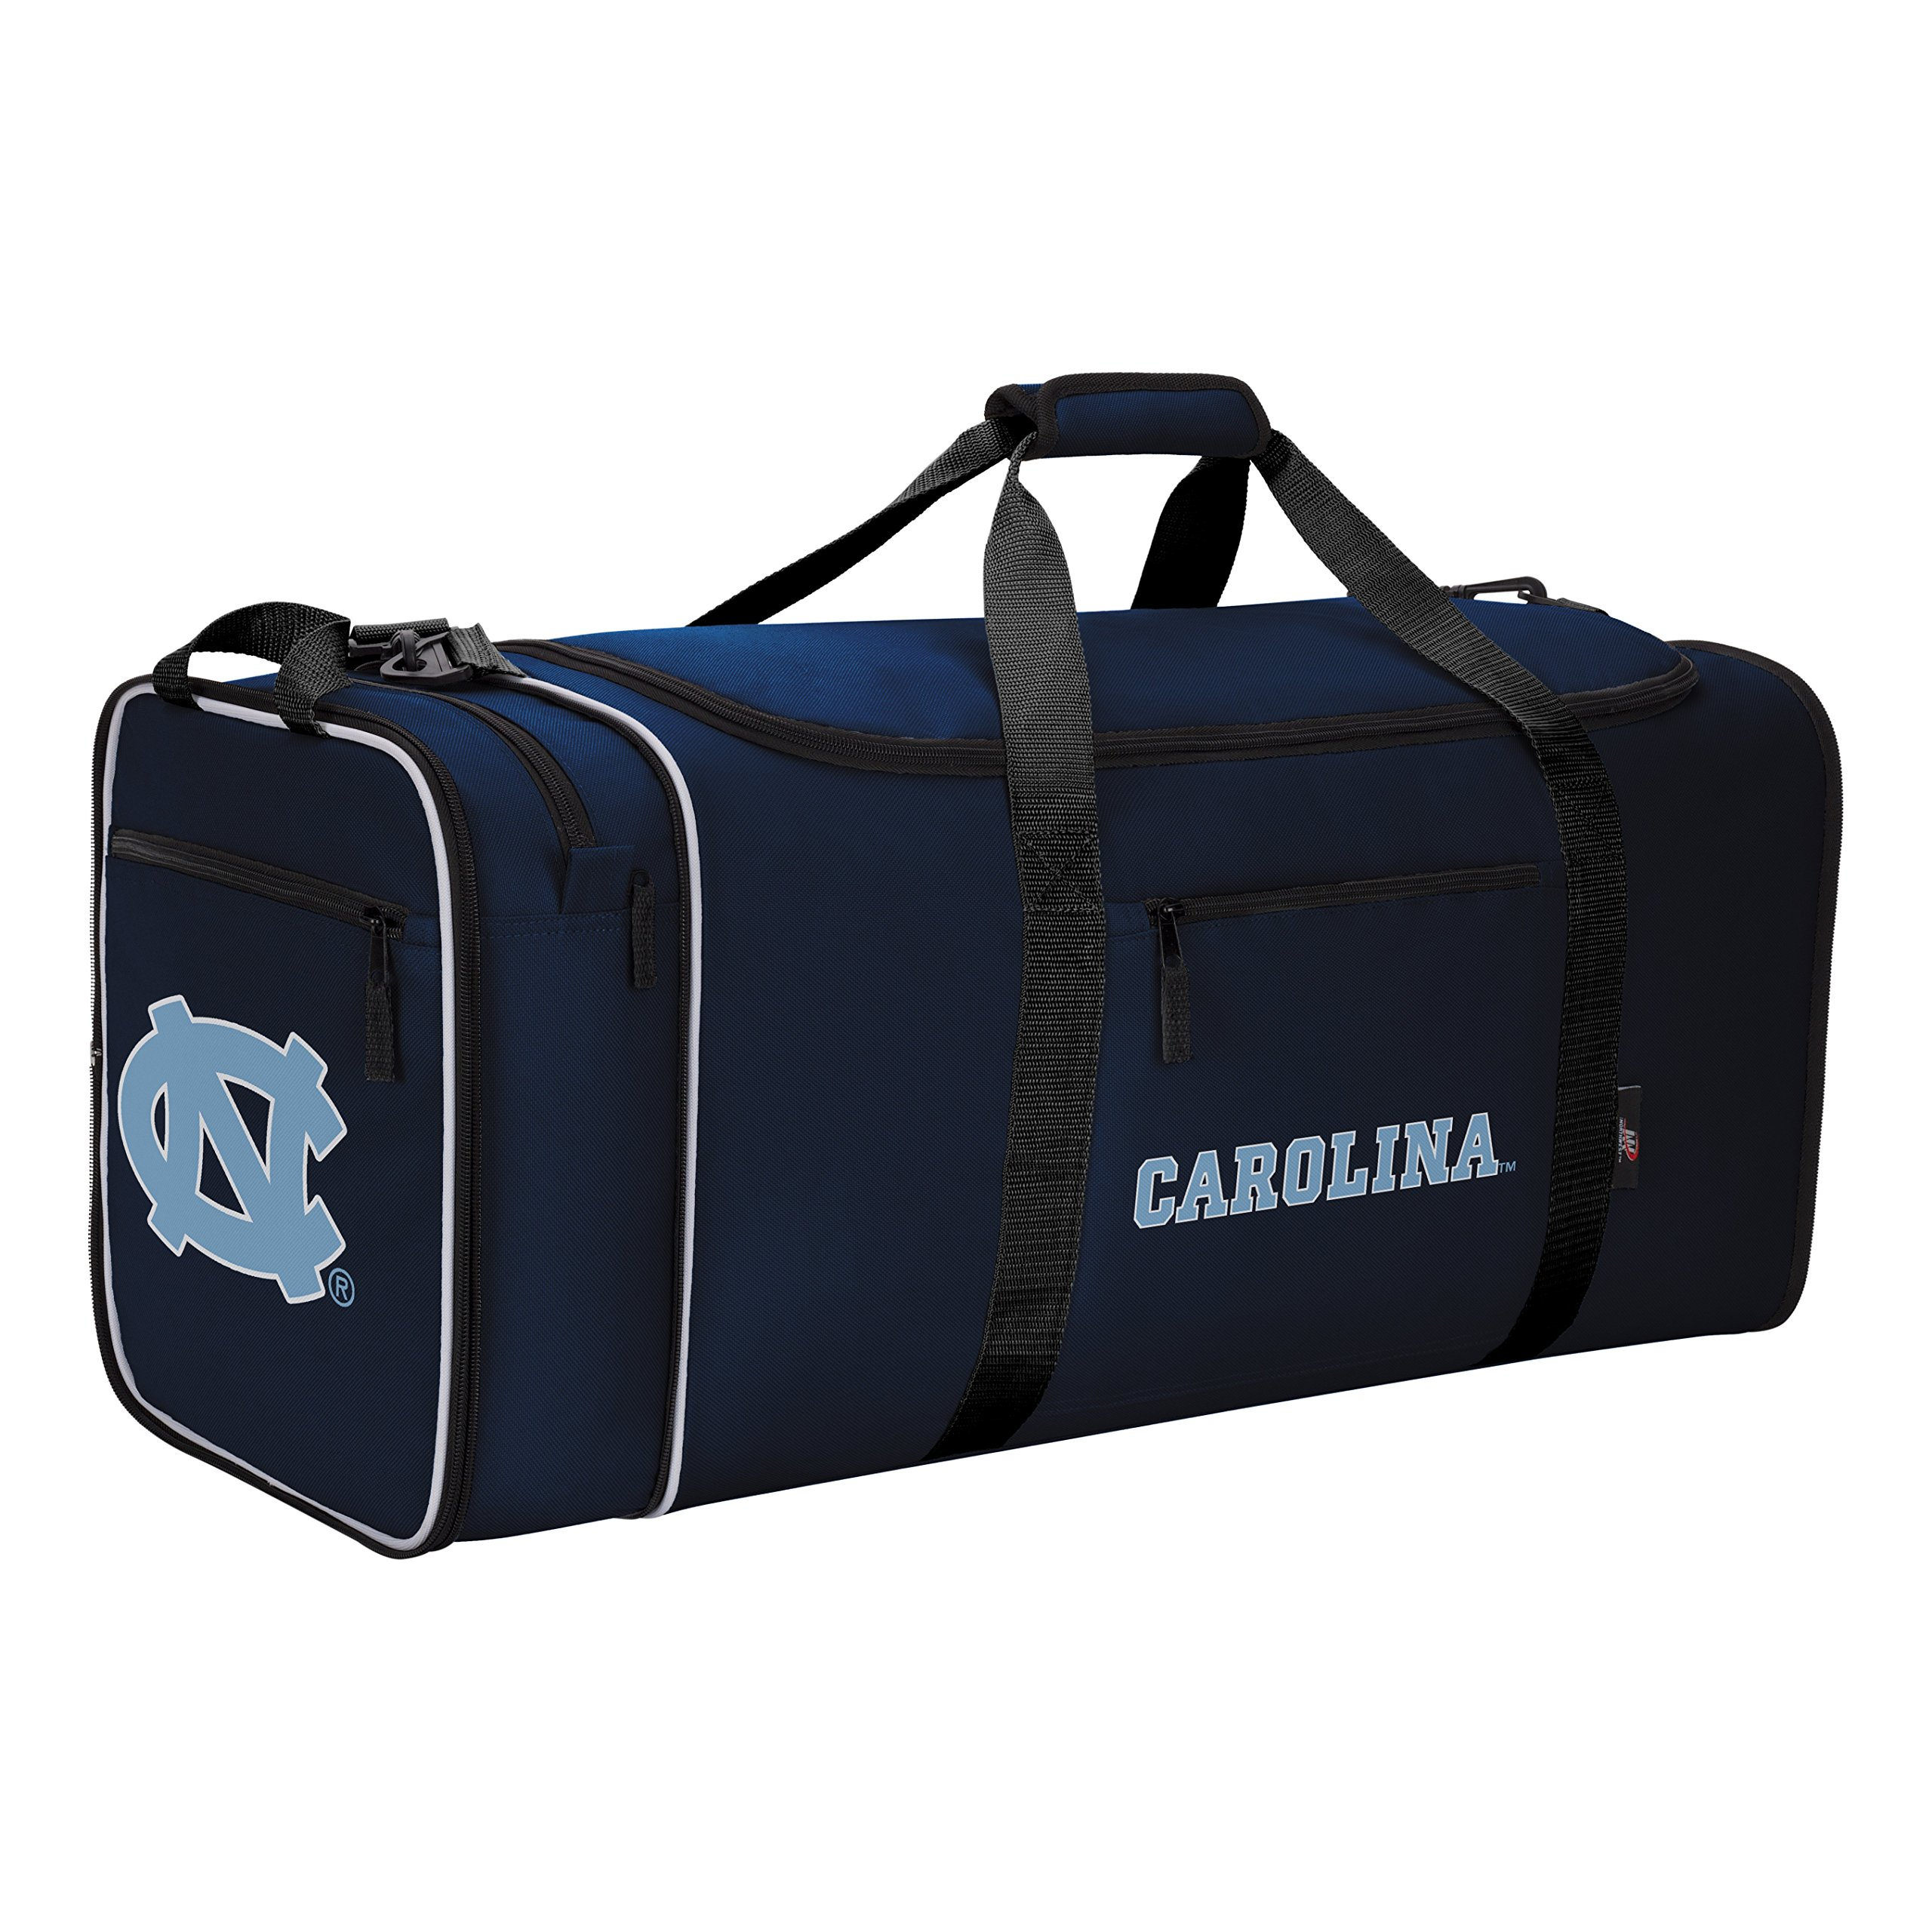 Officially Licensed NCAA North Carolina Tar Heels Steal Duffel Bag by The Northwest Company (Image #3)